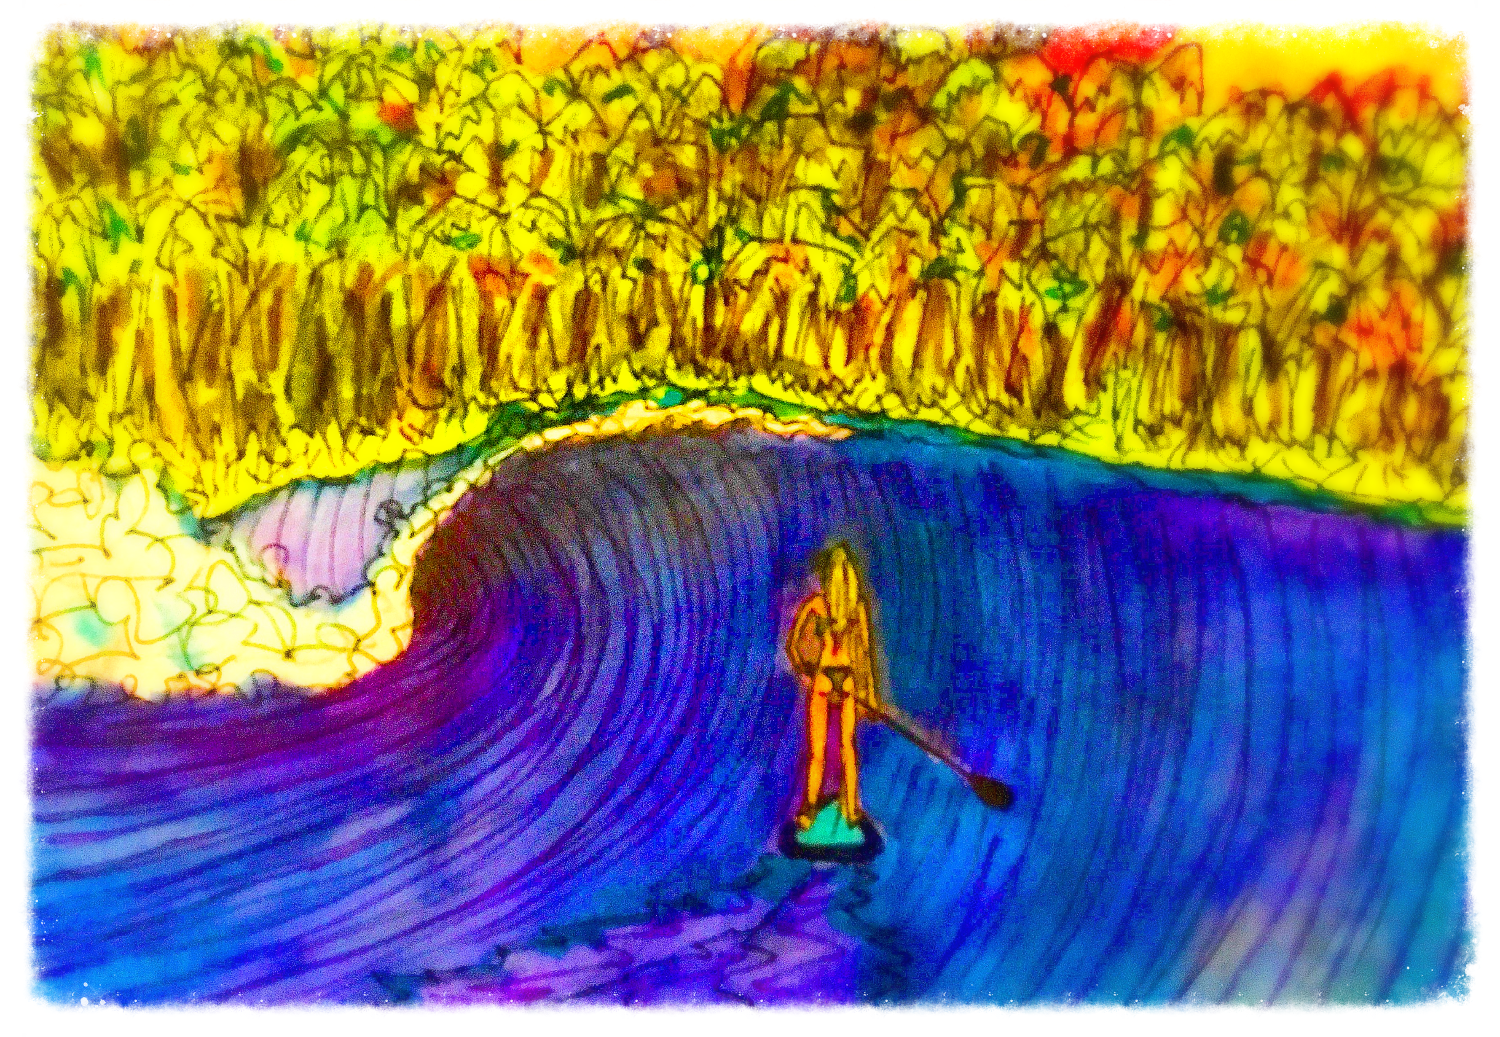 Surf Art by Brent February #26